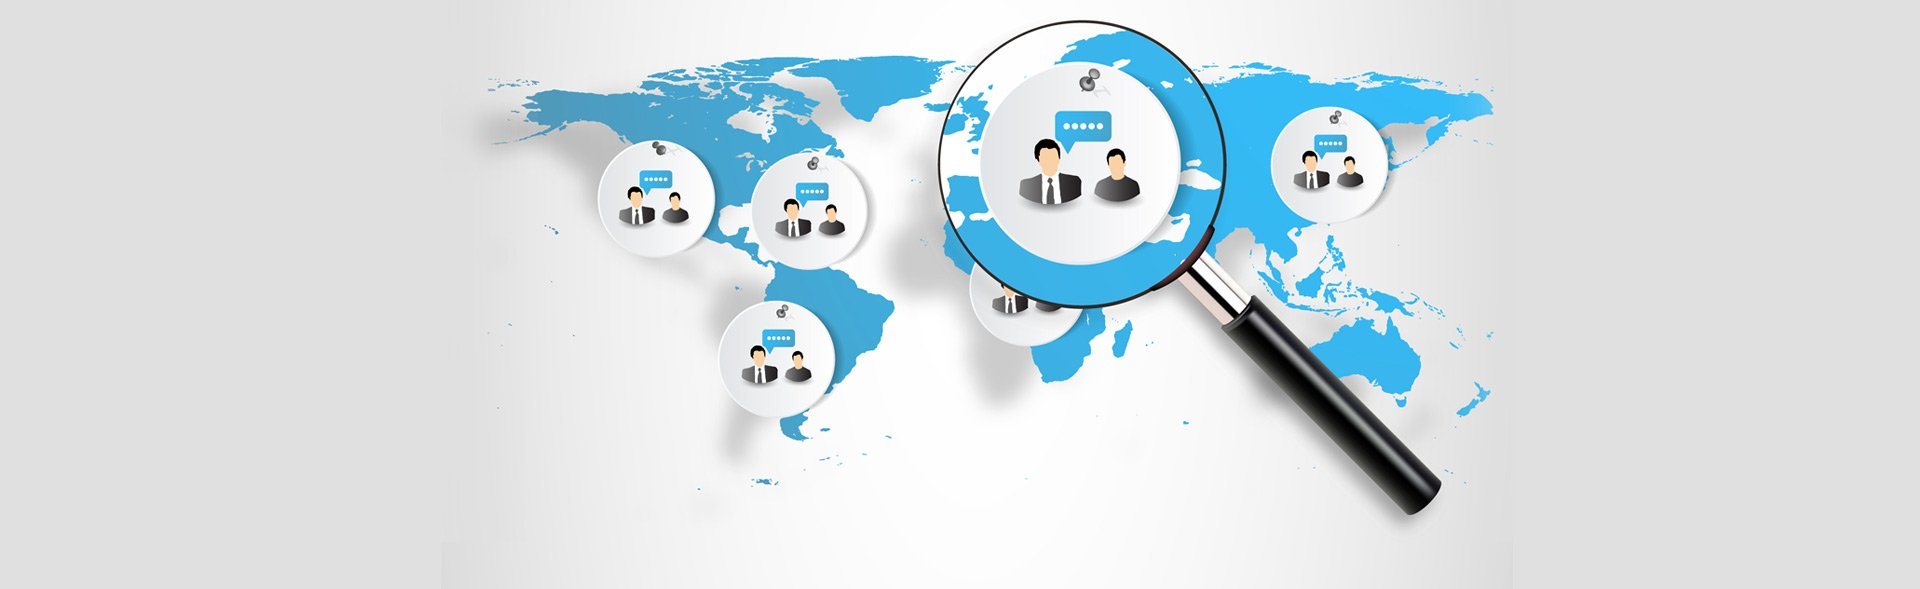 recruitment-process-outsourcing-companies-india